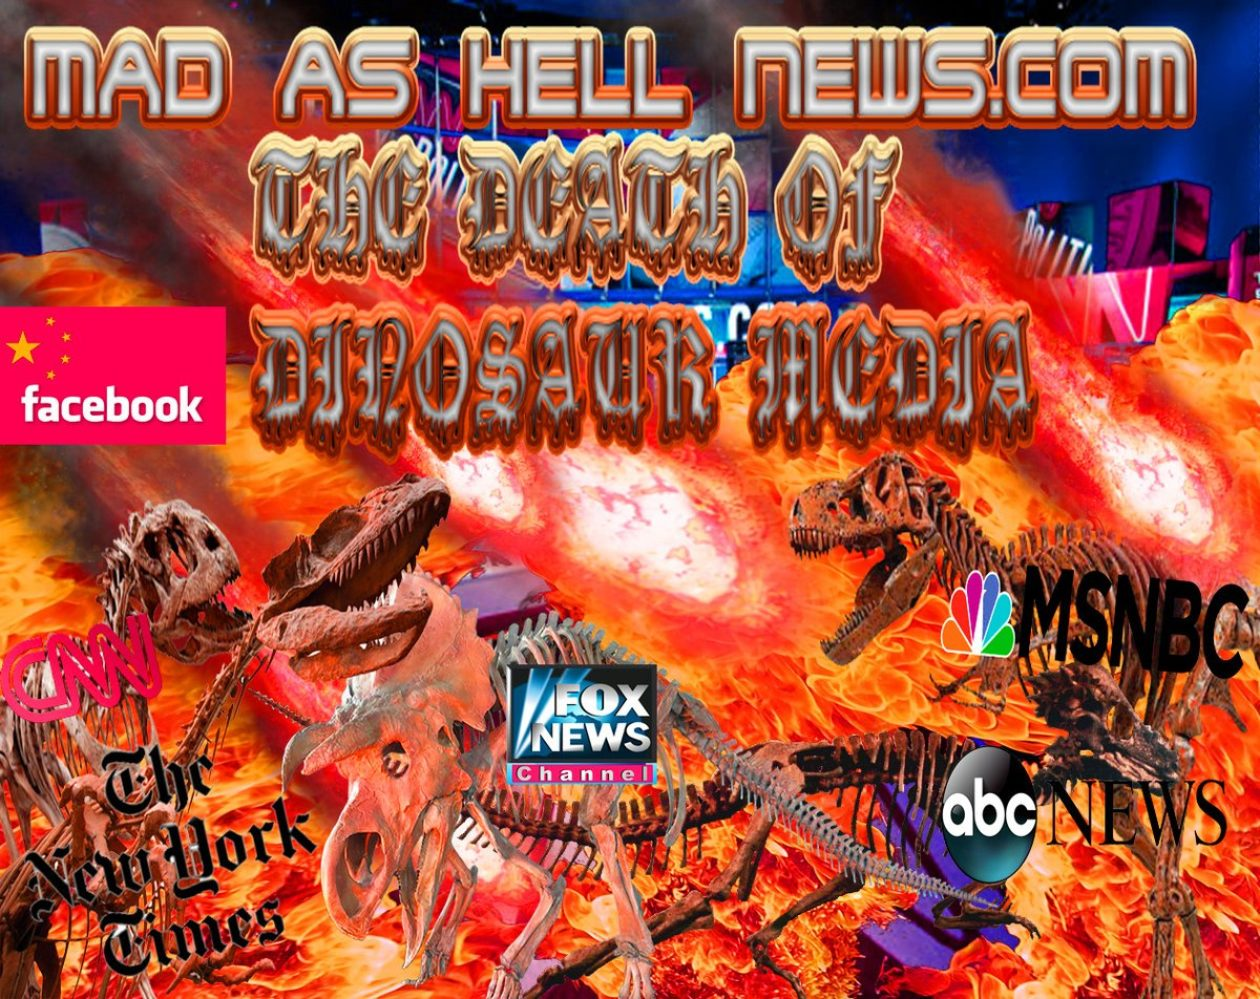 MAD AS HELL NEWS.COM